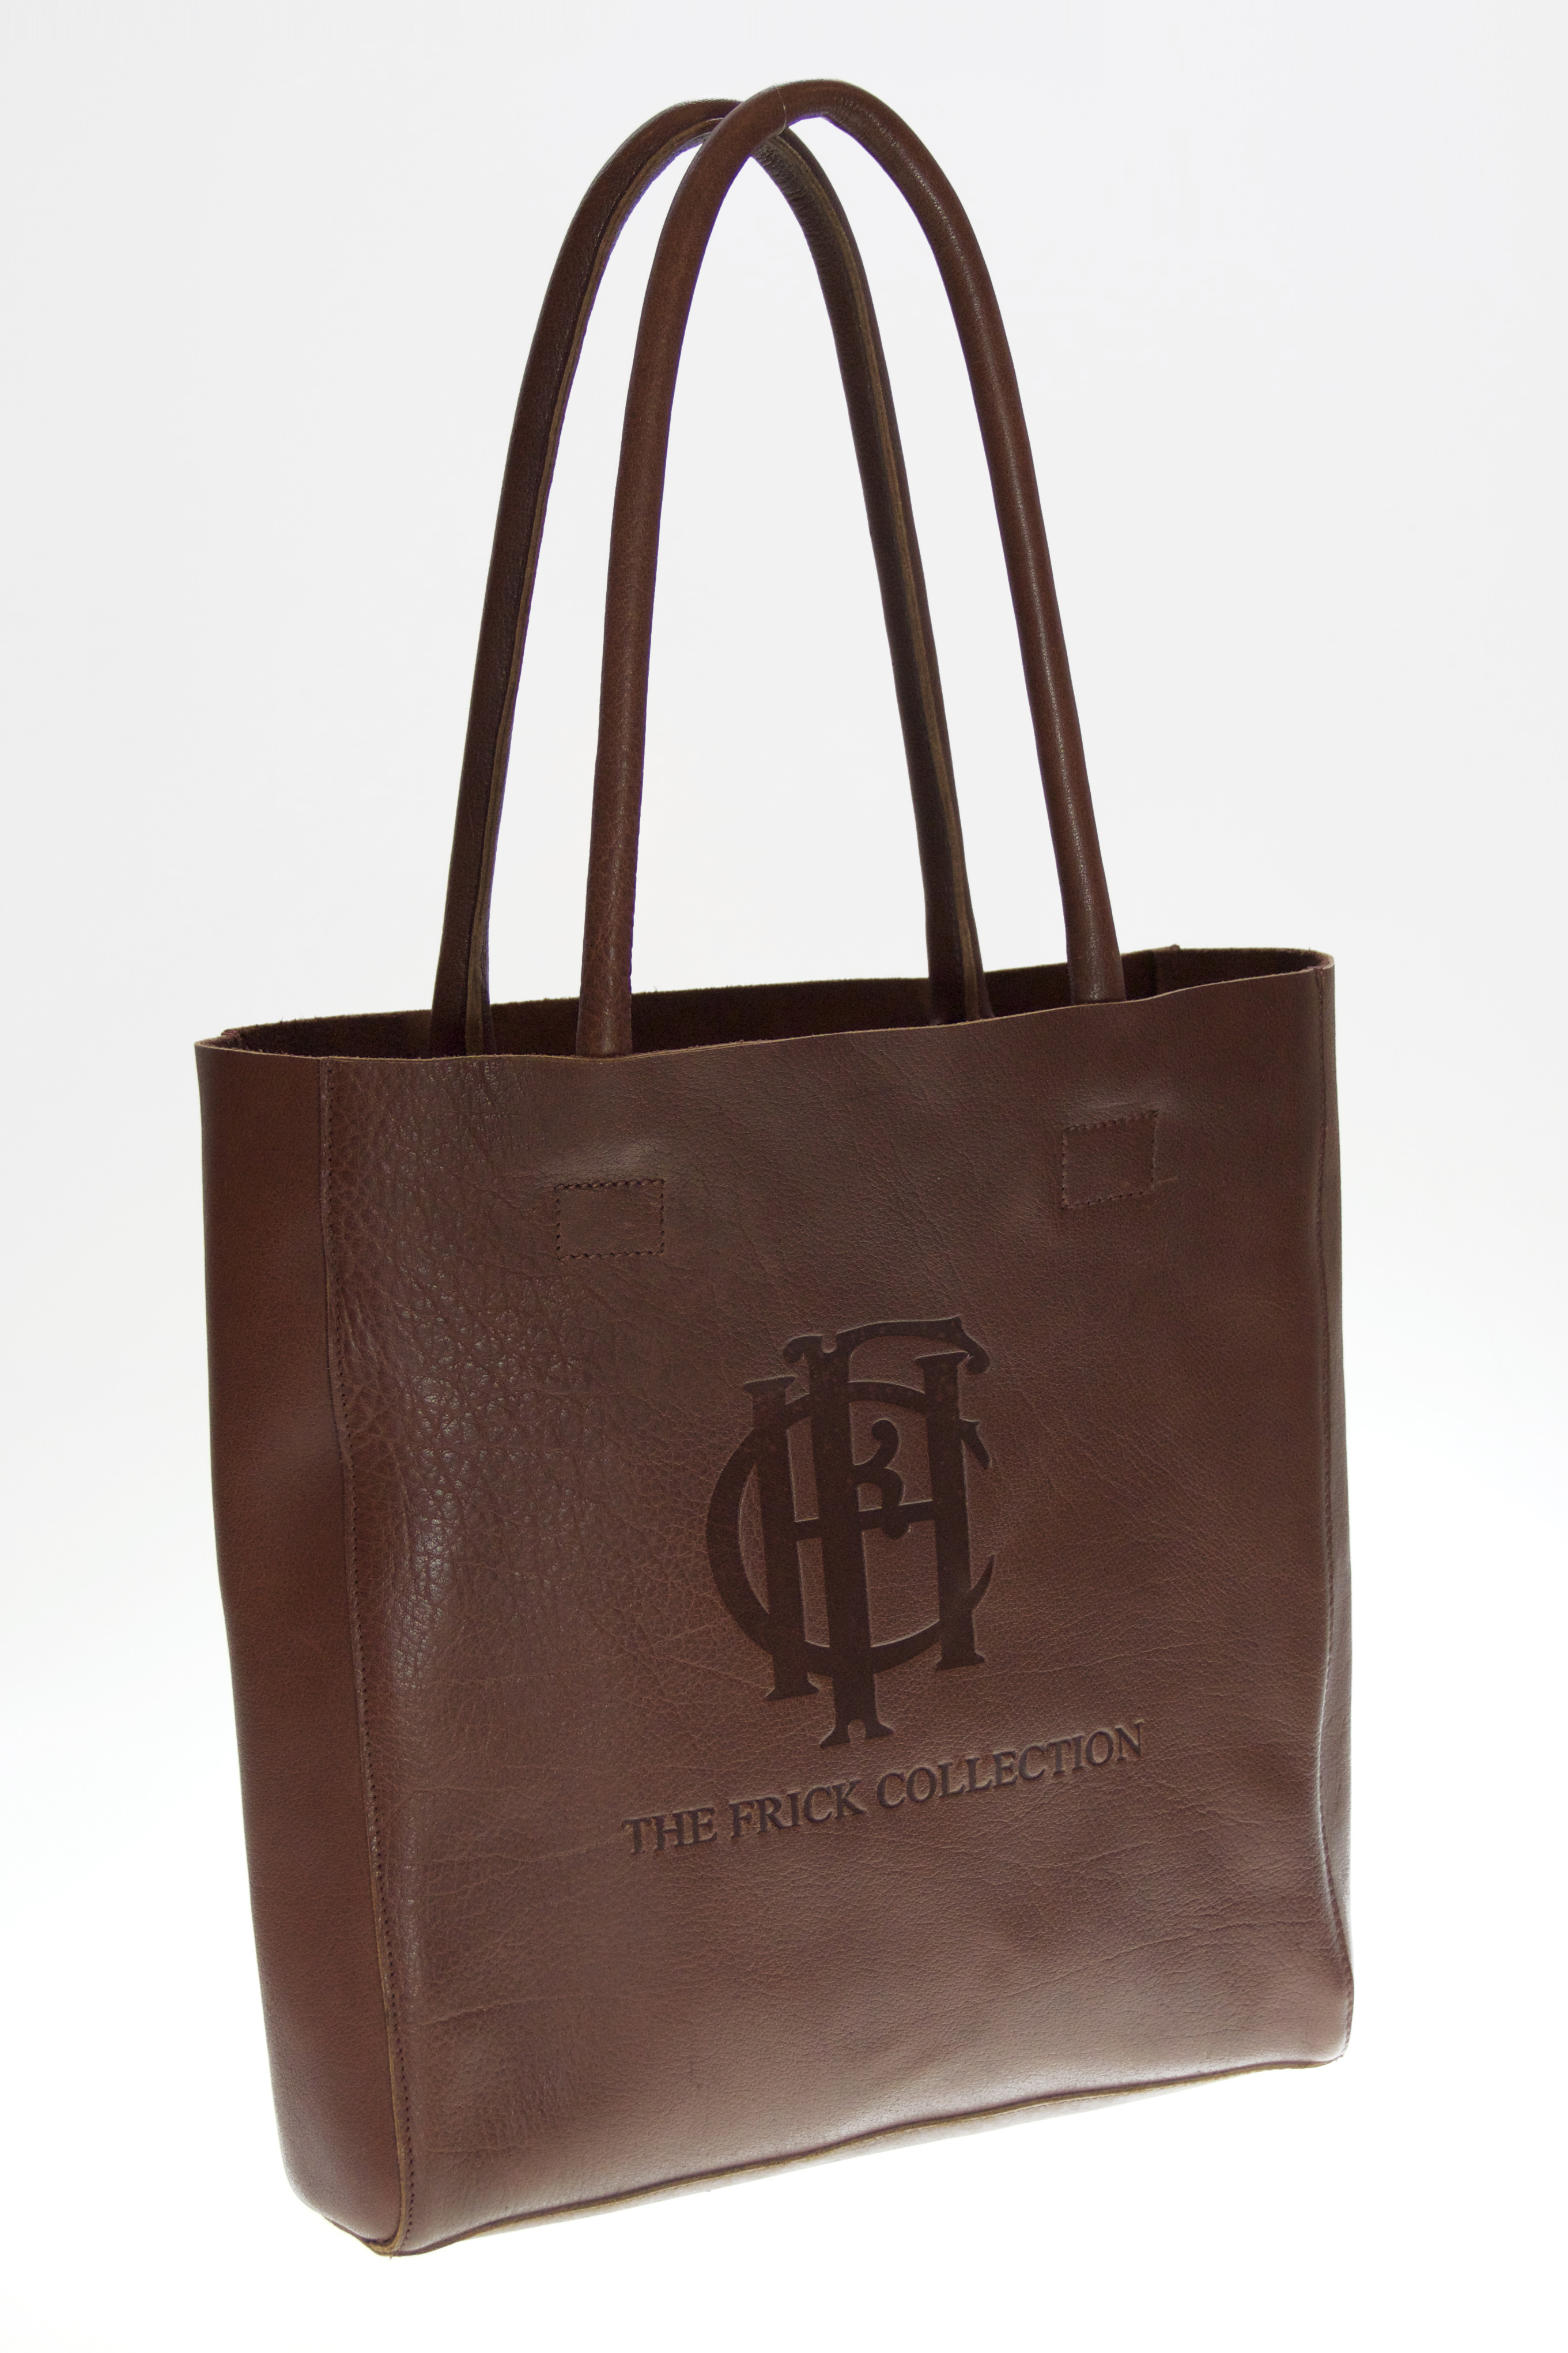 Frick Leather Tote E